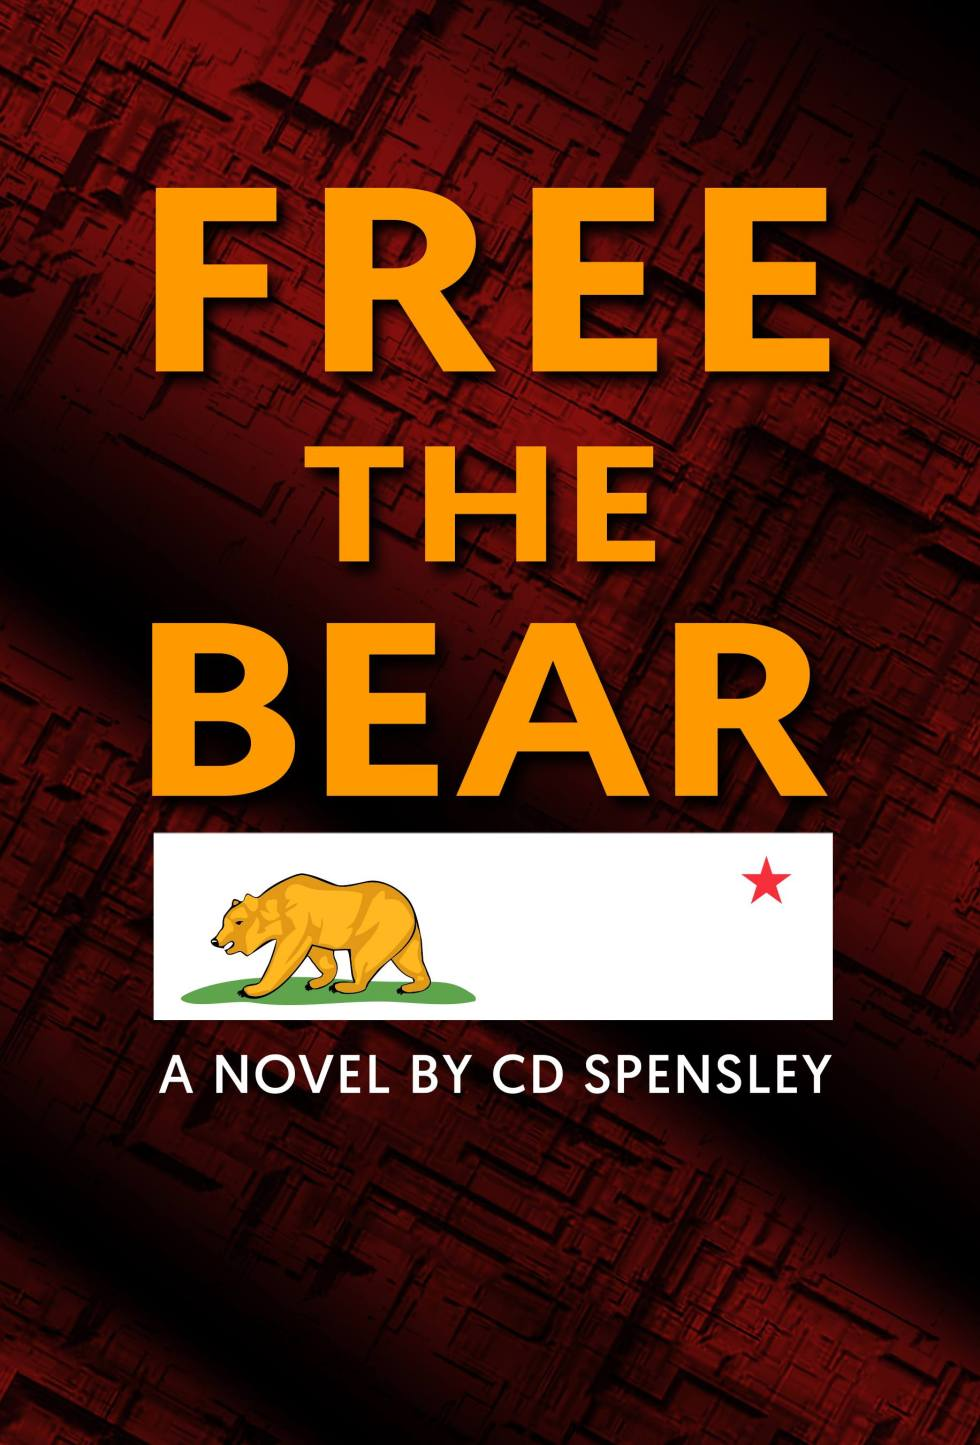 Free The Bear - An Excerpt from a Novel Of California Secession